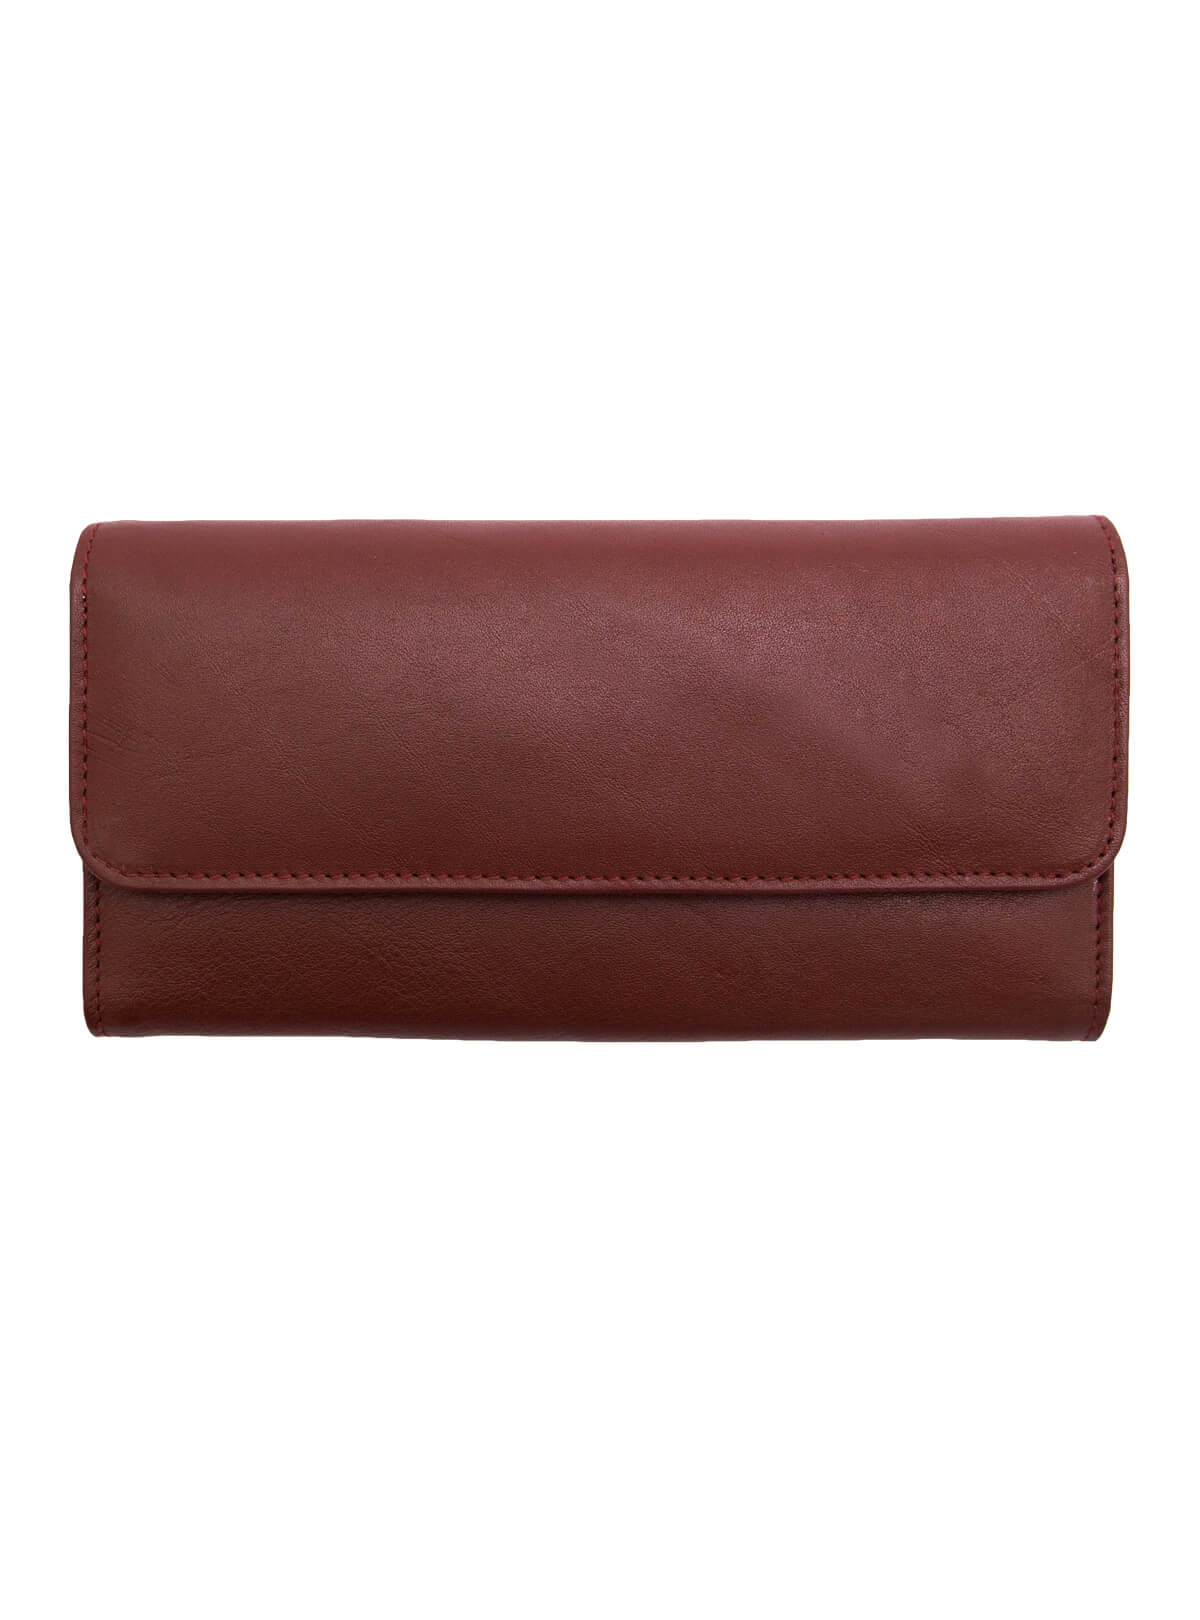 Chocolate Leather Wallet and Mobile Holder